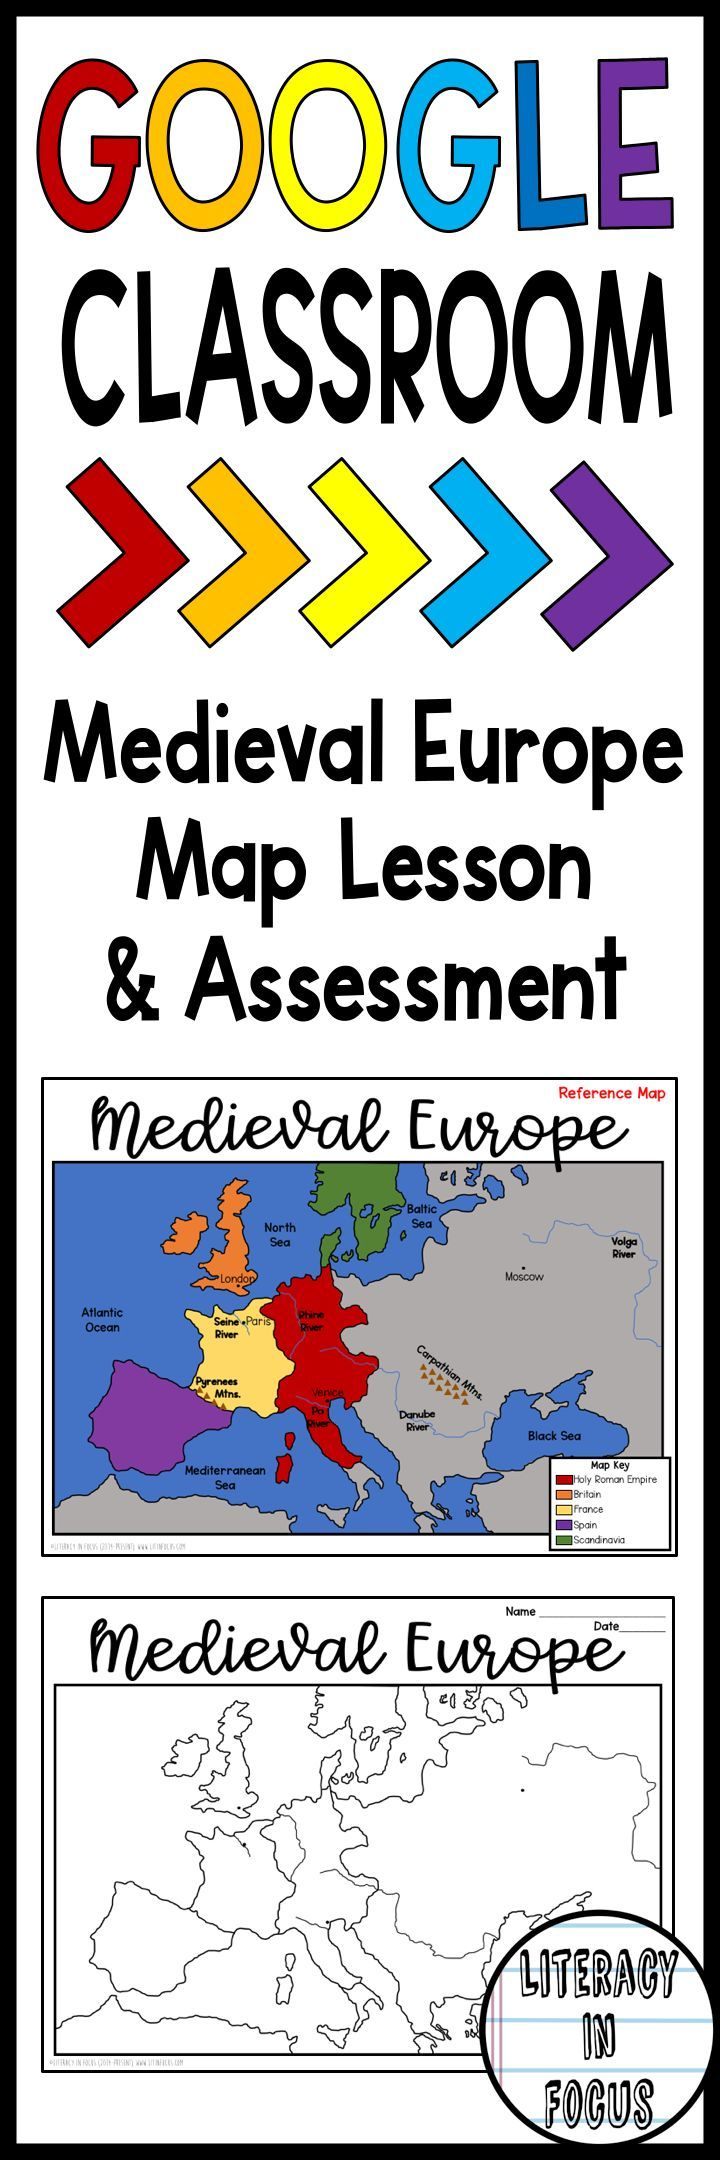 Medieval Europe map lesson and quiz for your Google Classroom! Students focus on the geography and empires of the Middle Ages. Digital and PDF versions included! #middleschool #worldhistory #middleages #medievaleurope #holyromanempire #maplesson